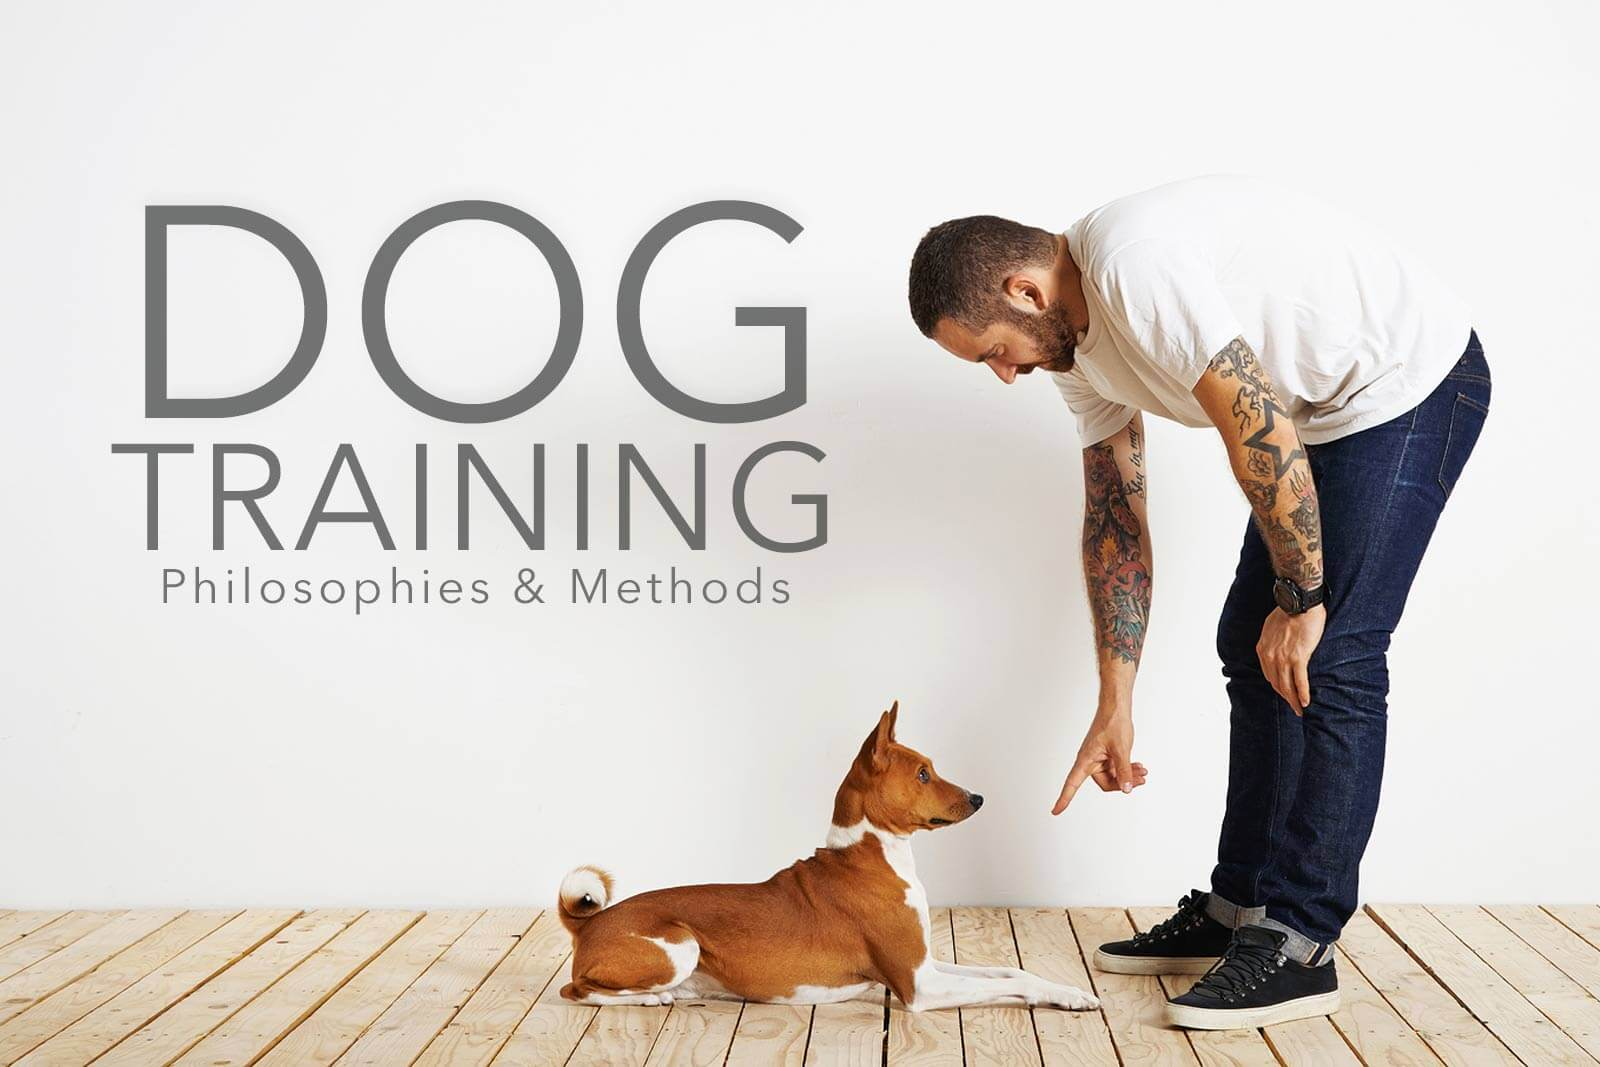 Dog Training Philosophies and Methods